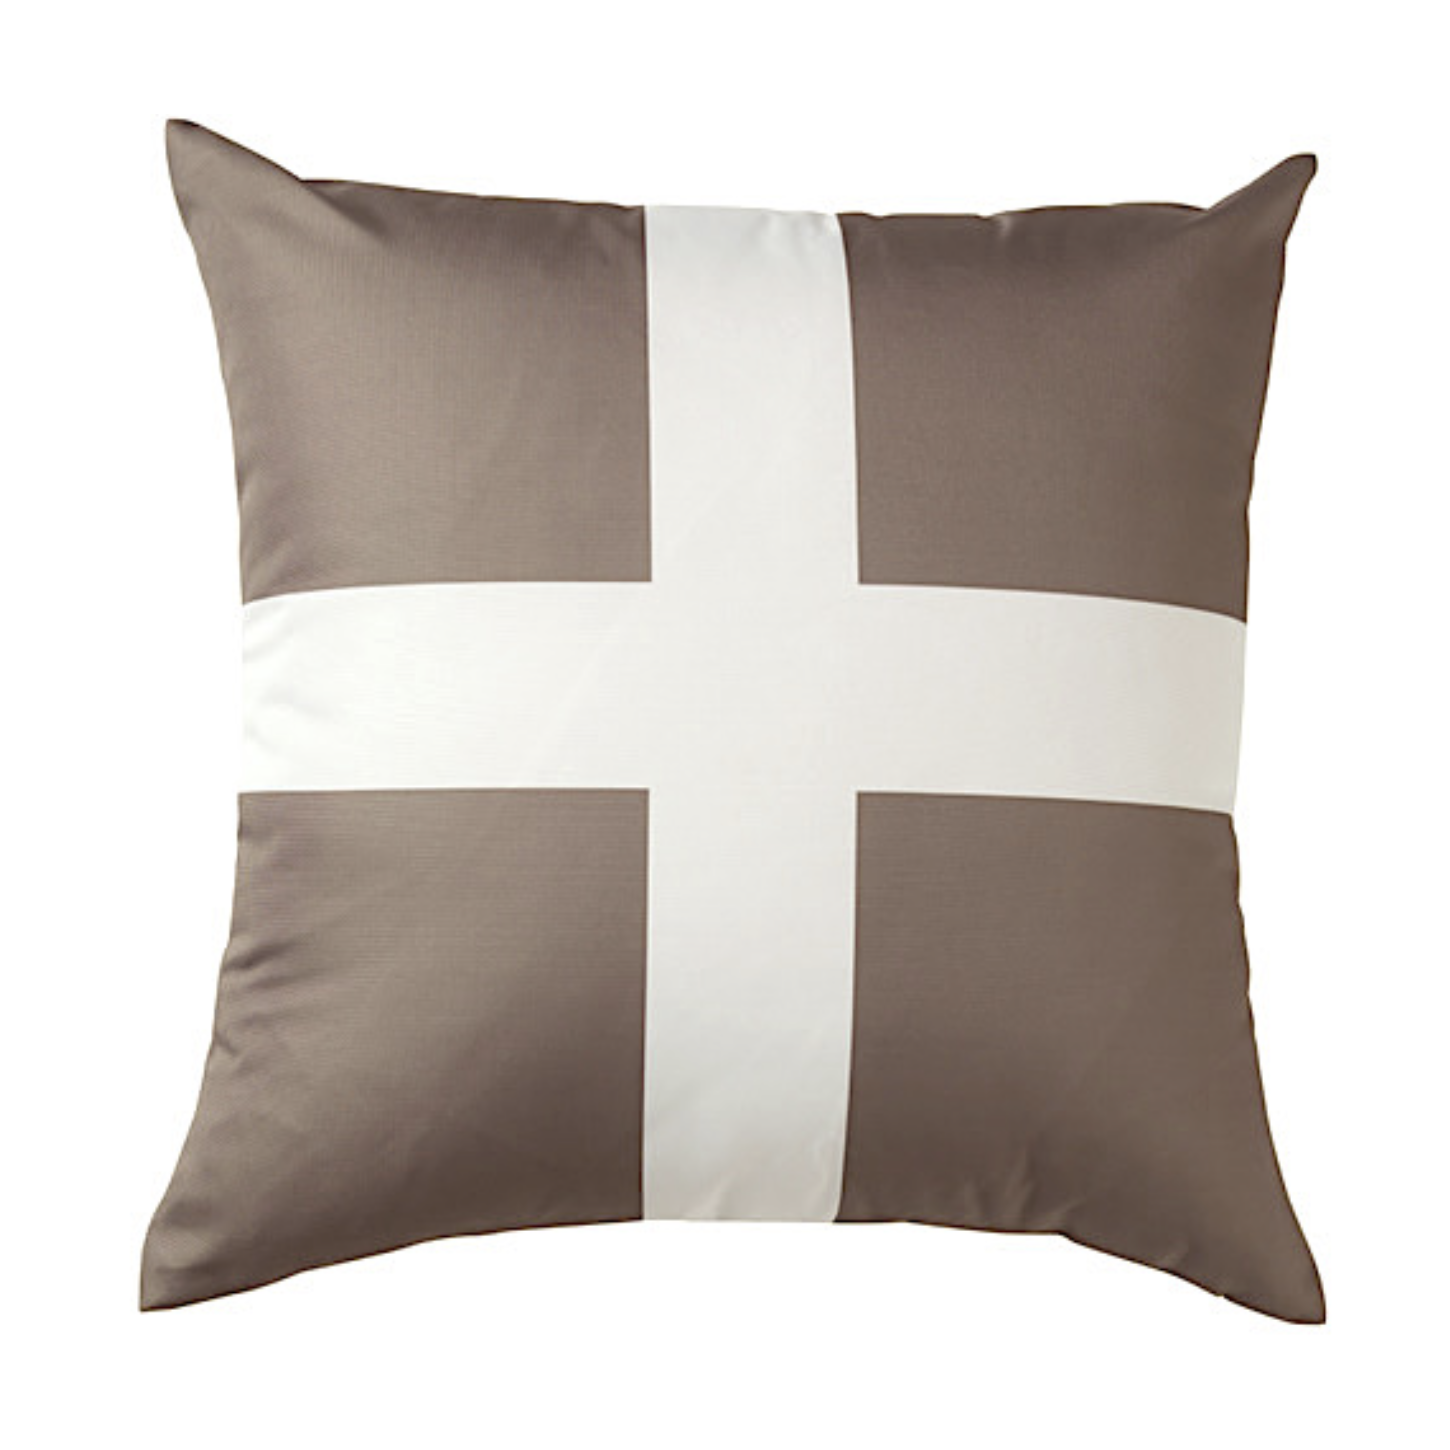 Hamilton Cross Outdoor Cushion